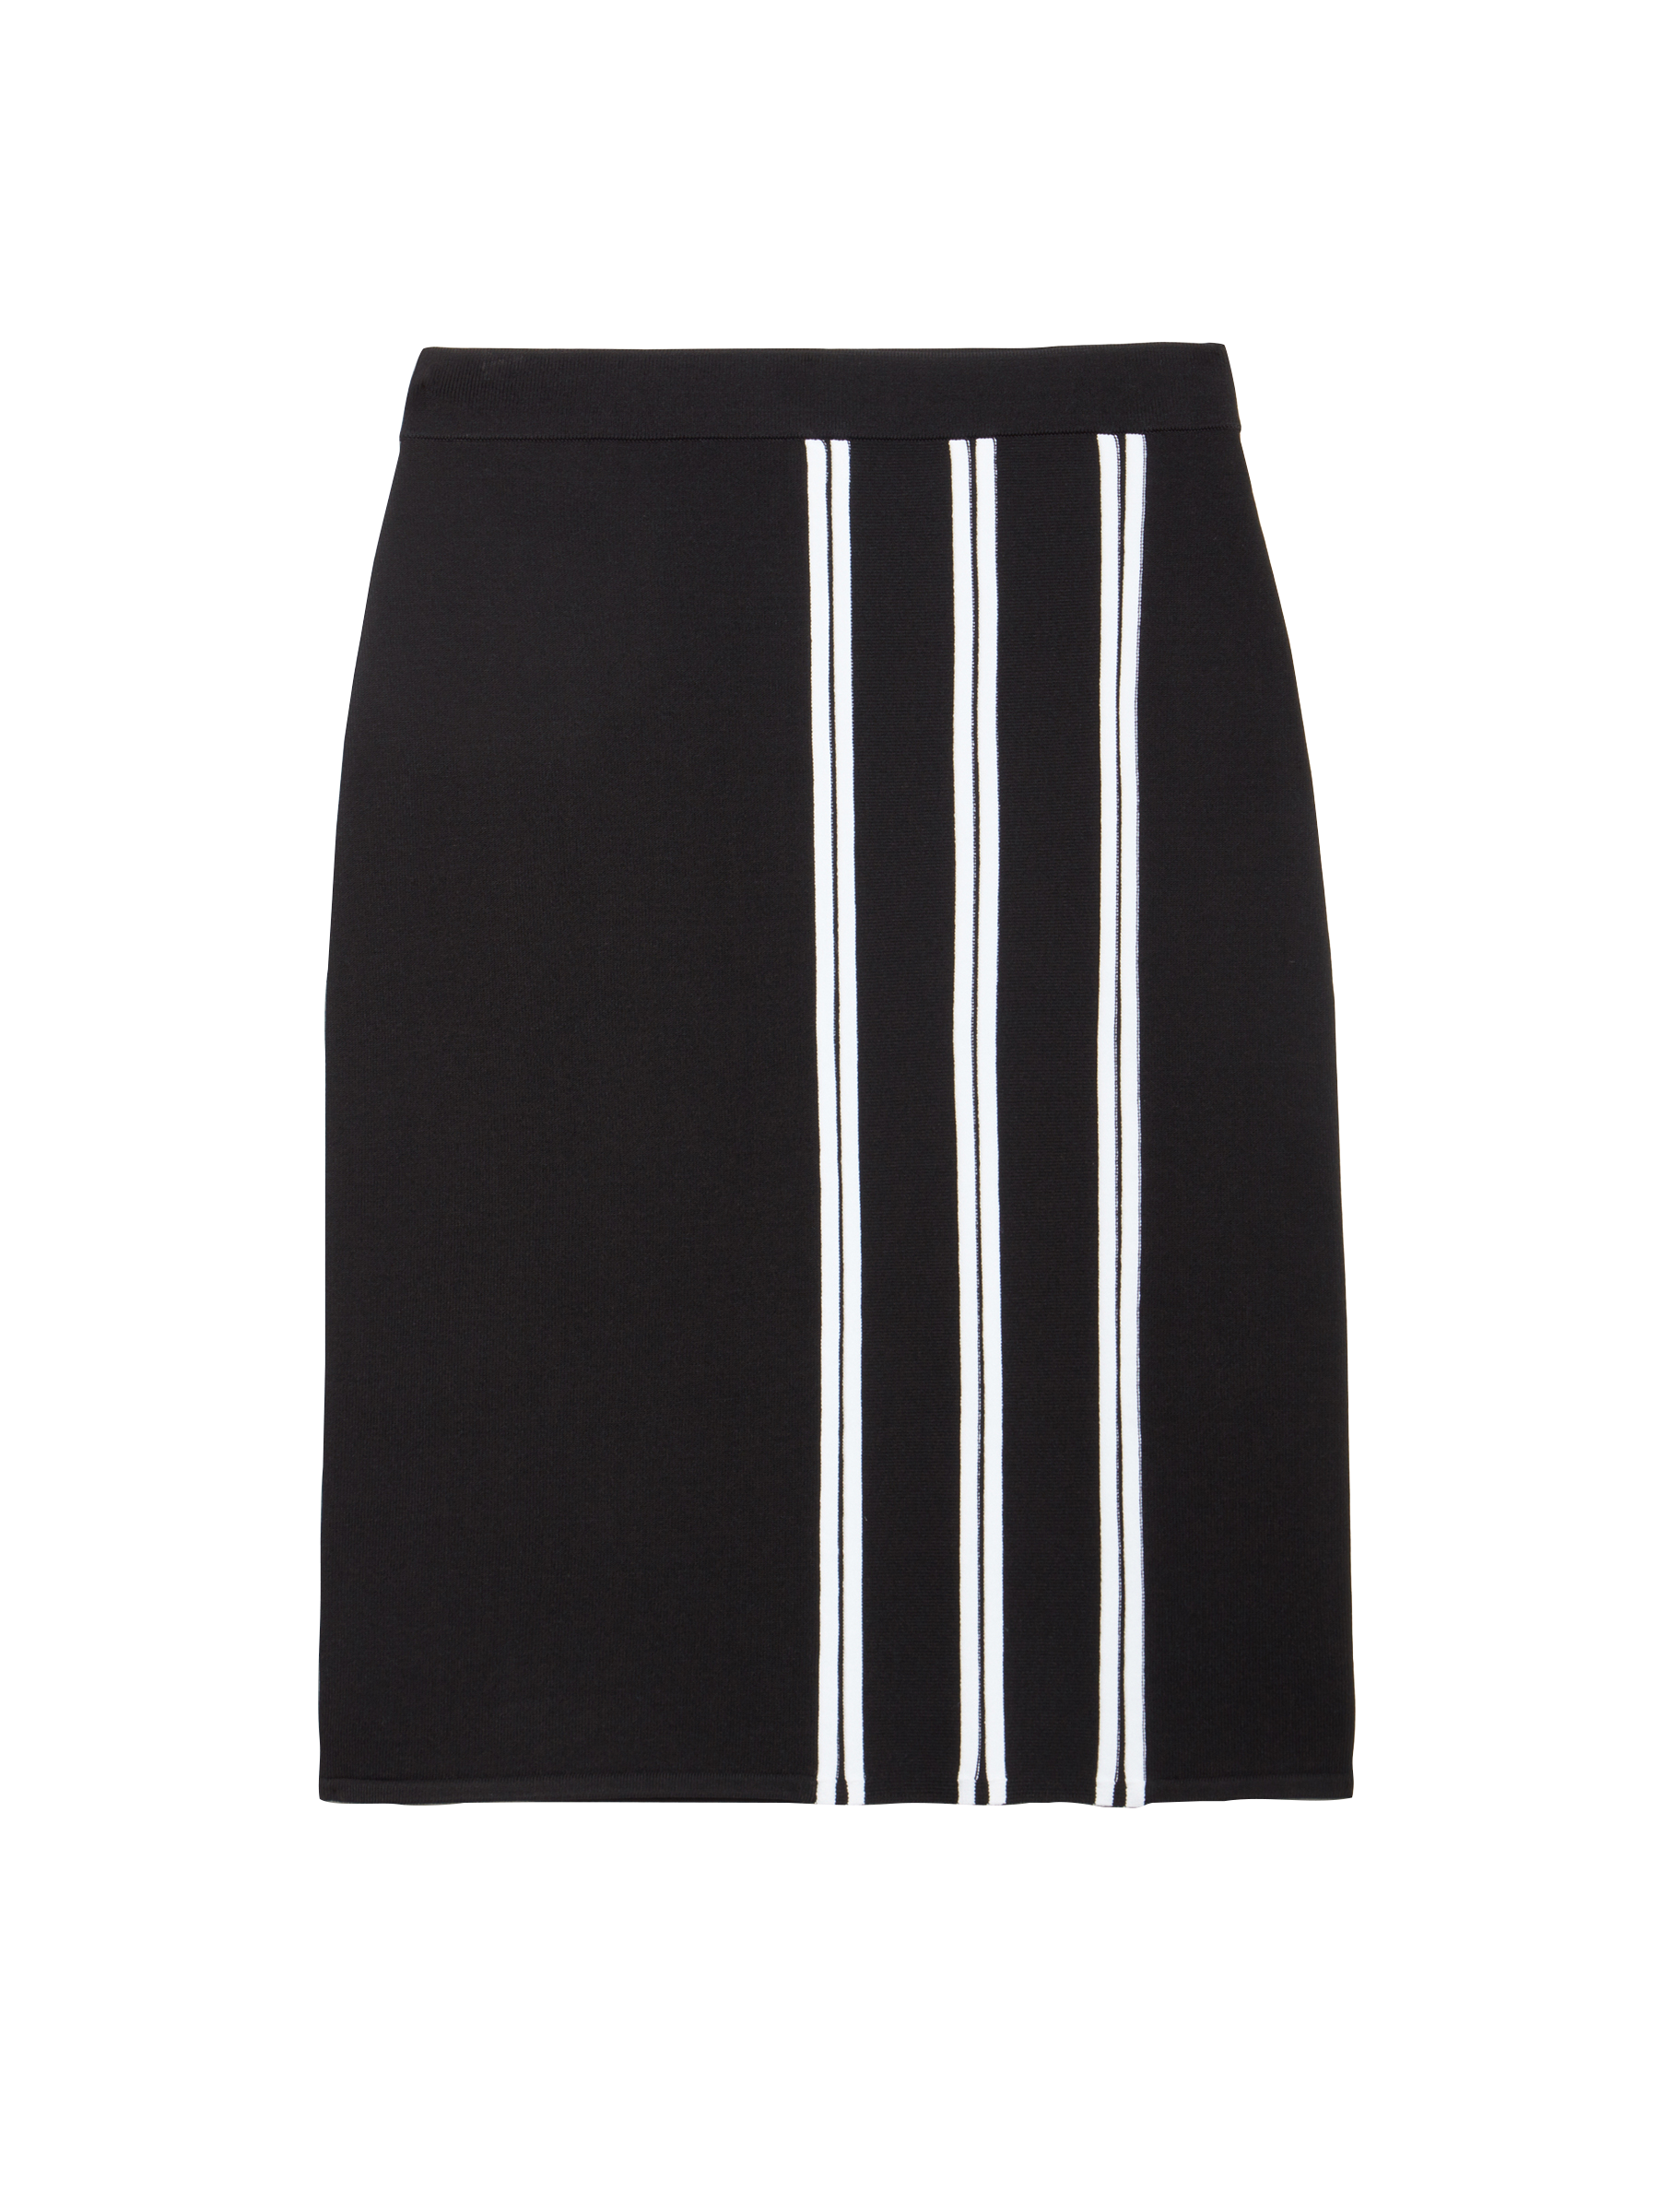 Strong, clean lines are core to the appeal and flattery of this sweater skirt. This drapey blend in solid black creates movement and a slimmer profile.